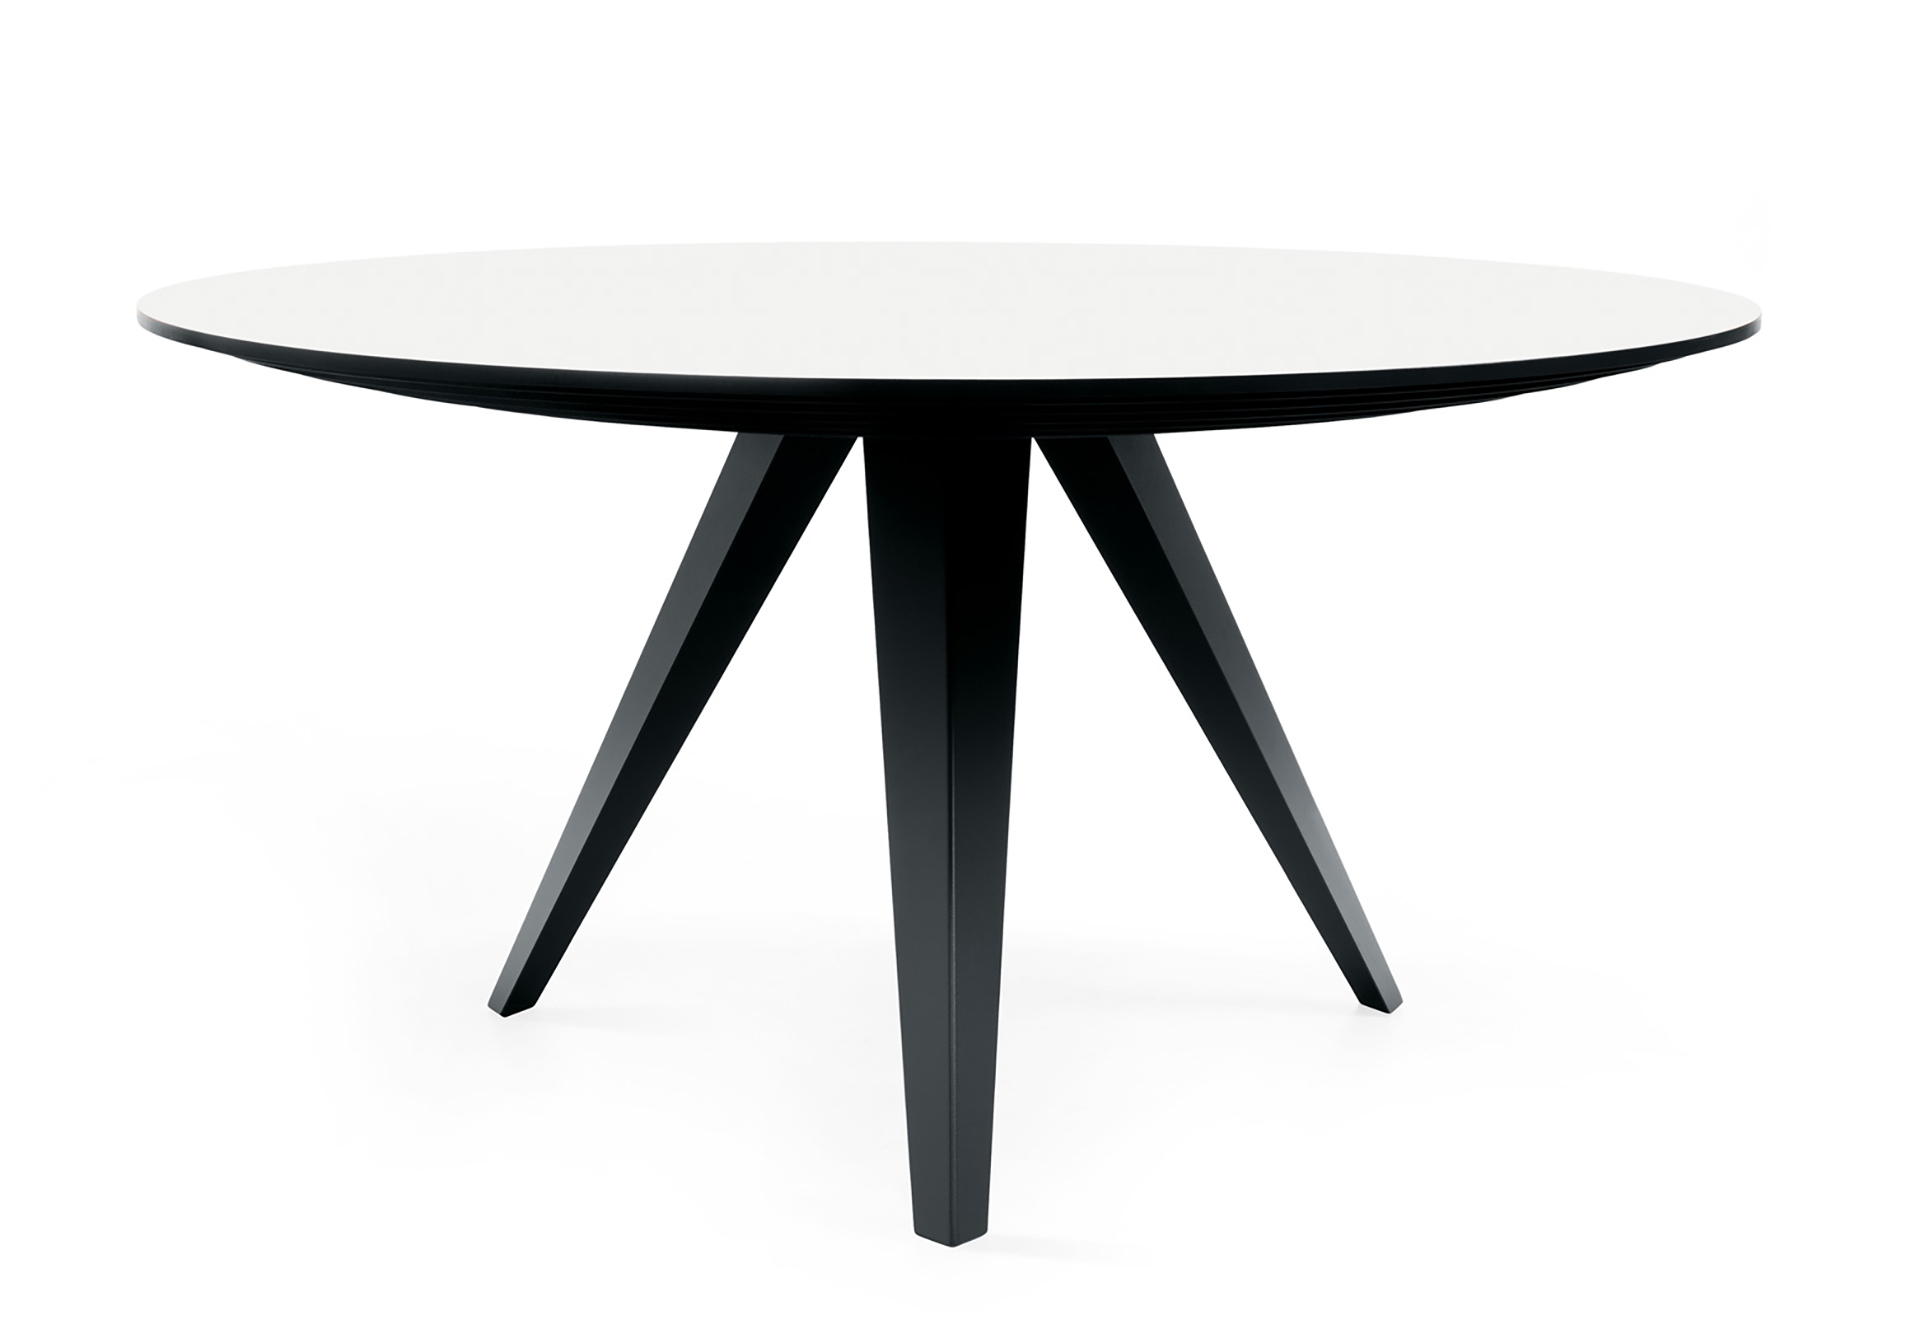 Ronde eettafel belly l kees marcelis l odesi. your dutch design.